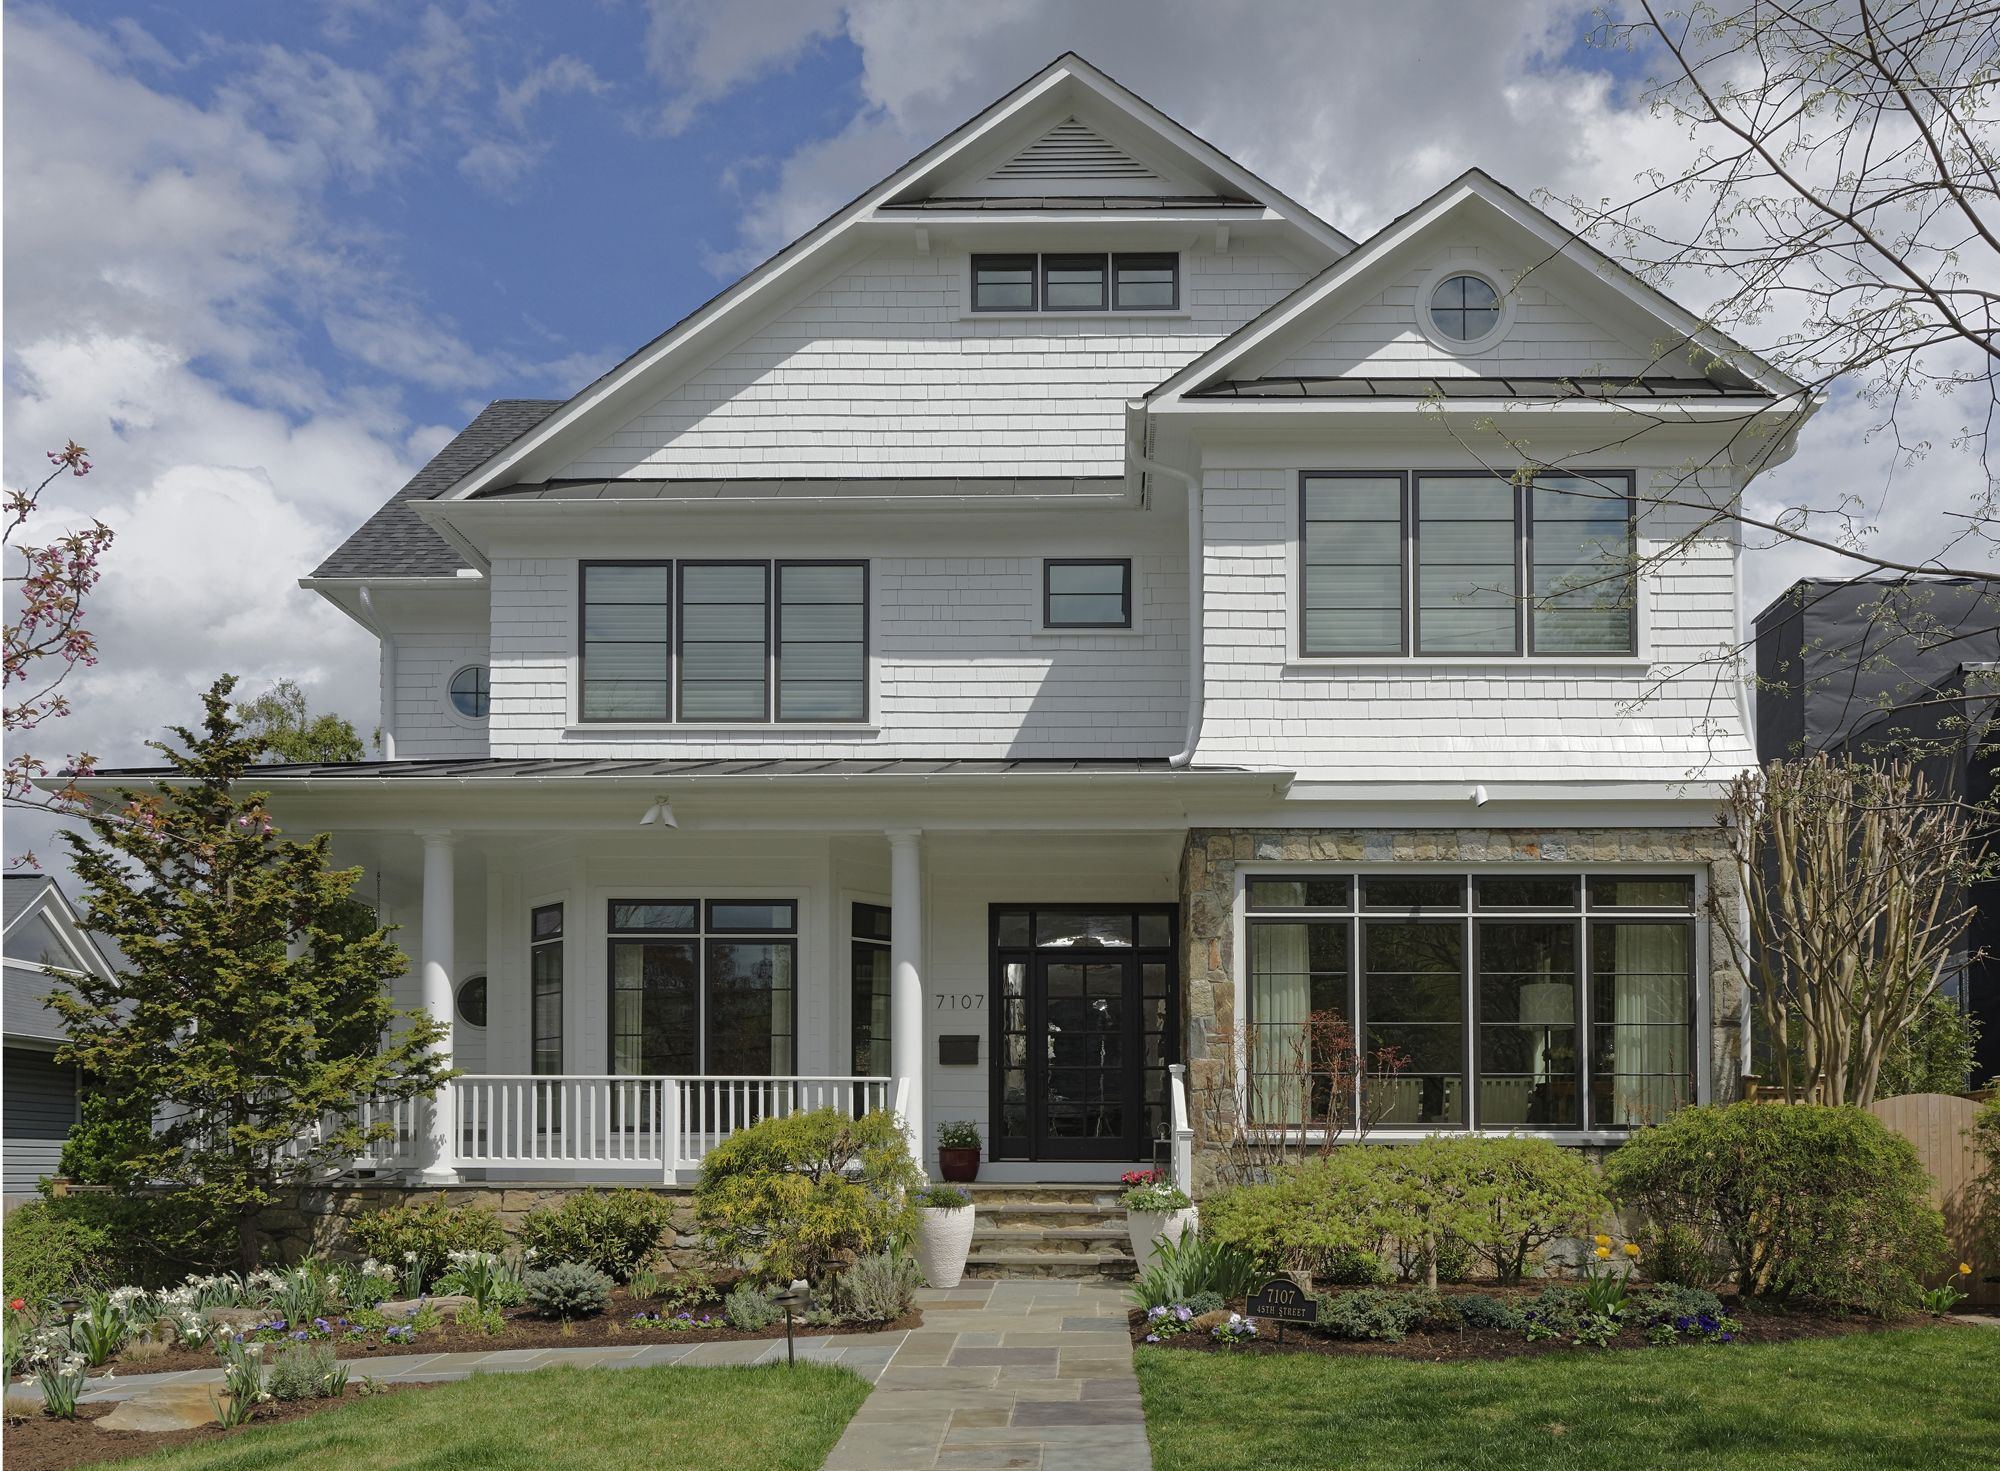 Exterior Elevations Photo Gallery - Bowa - Design Build Renovations